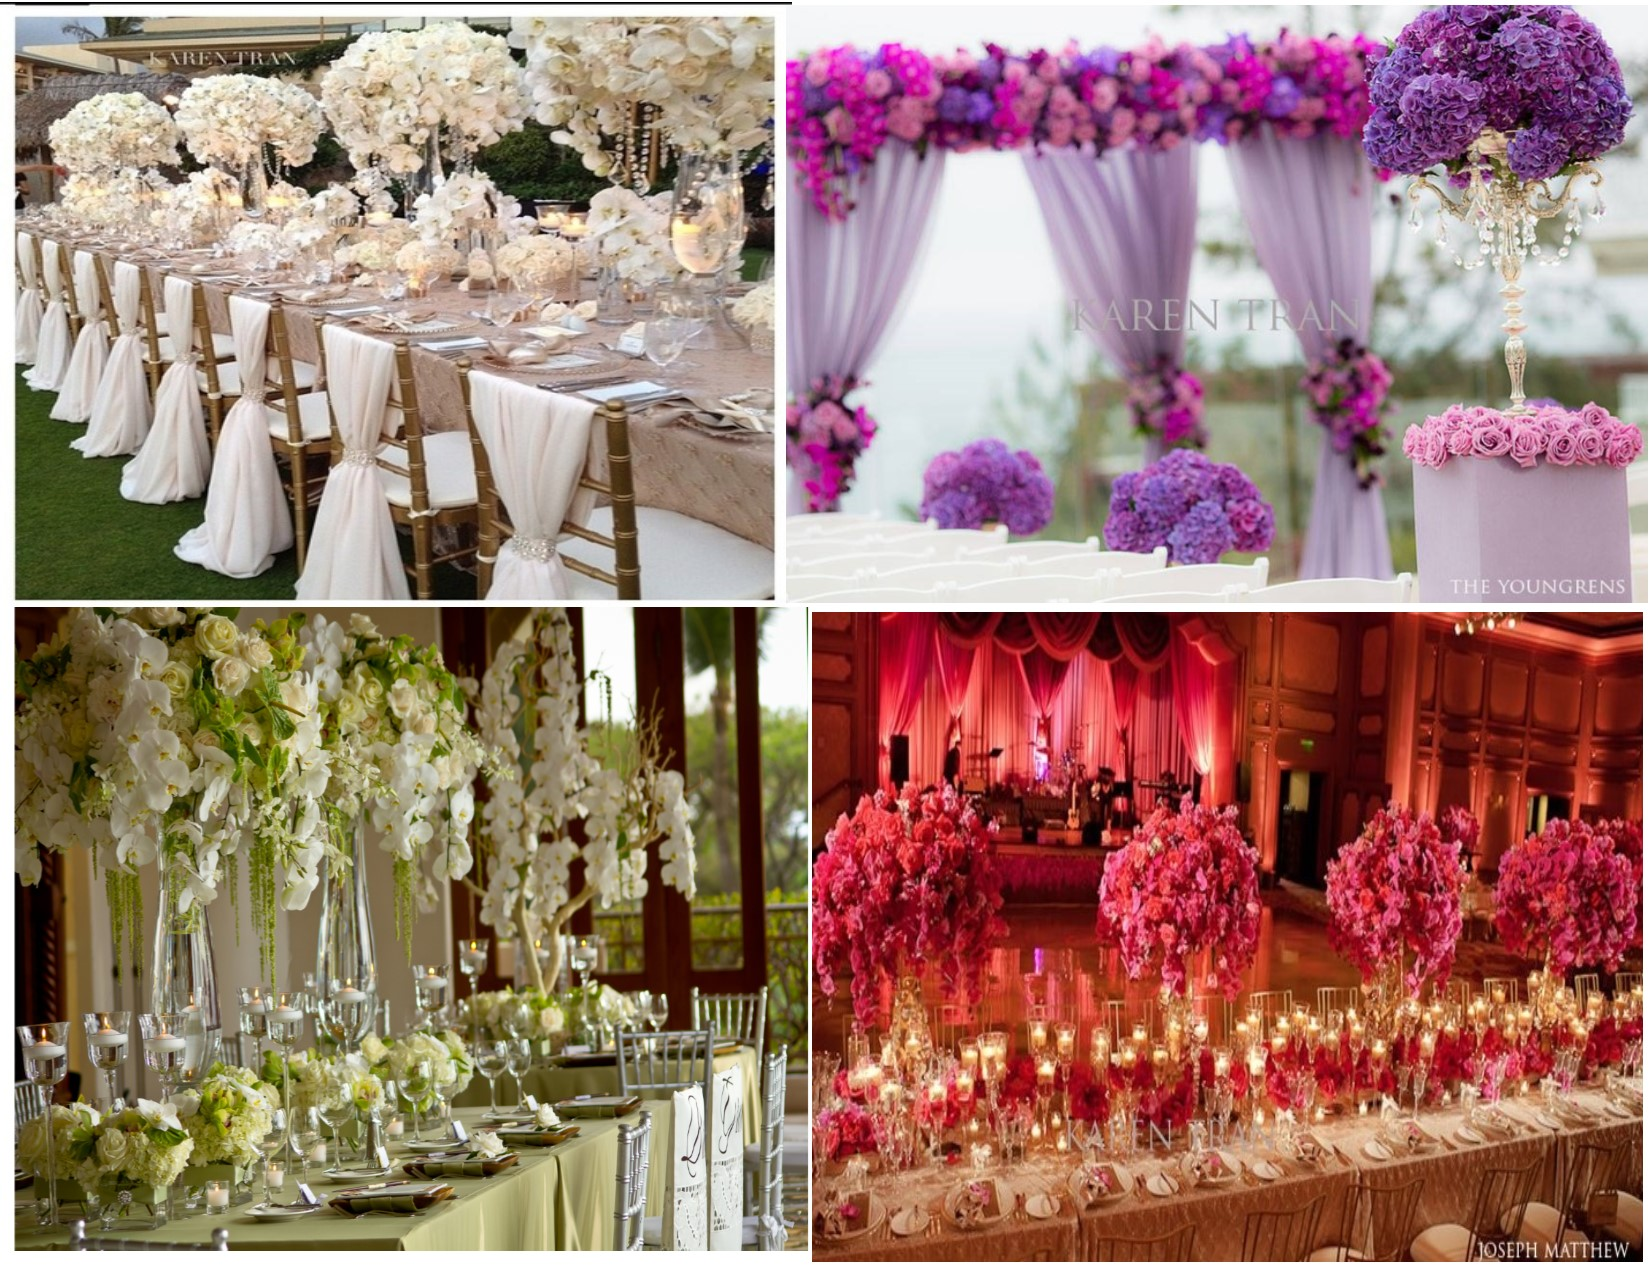 On cloud nine events top 14 wedding trends of 2014 6 for Trending decor